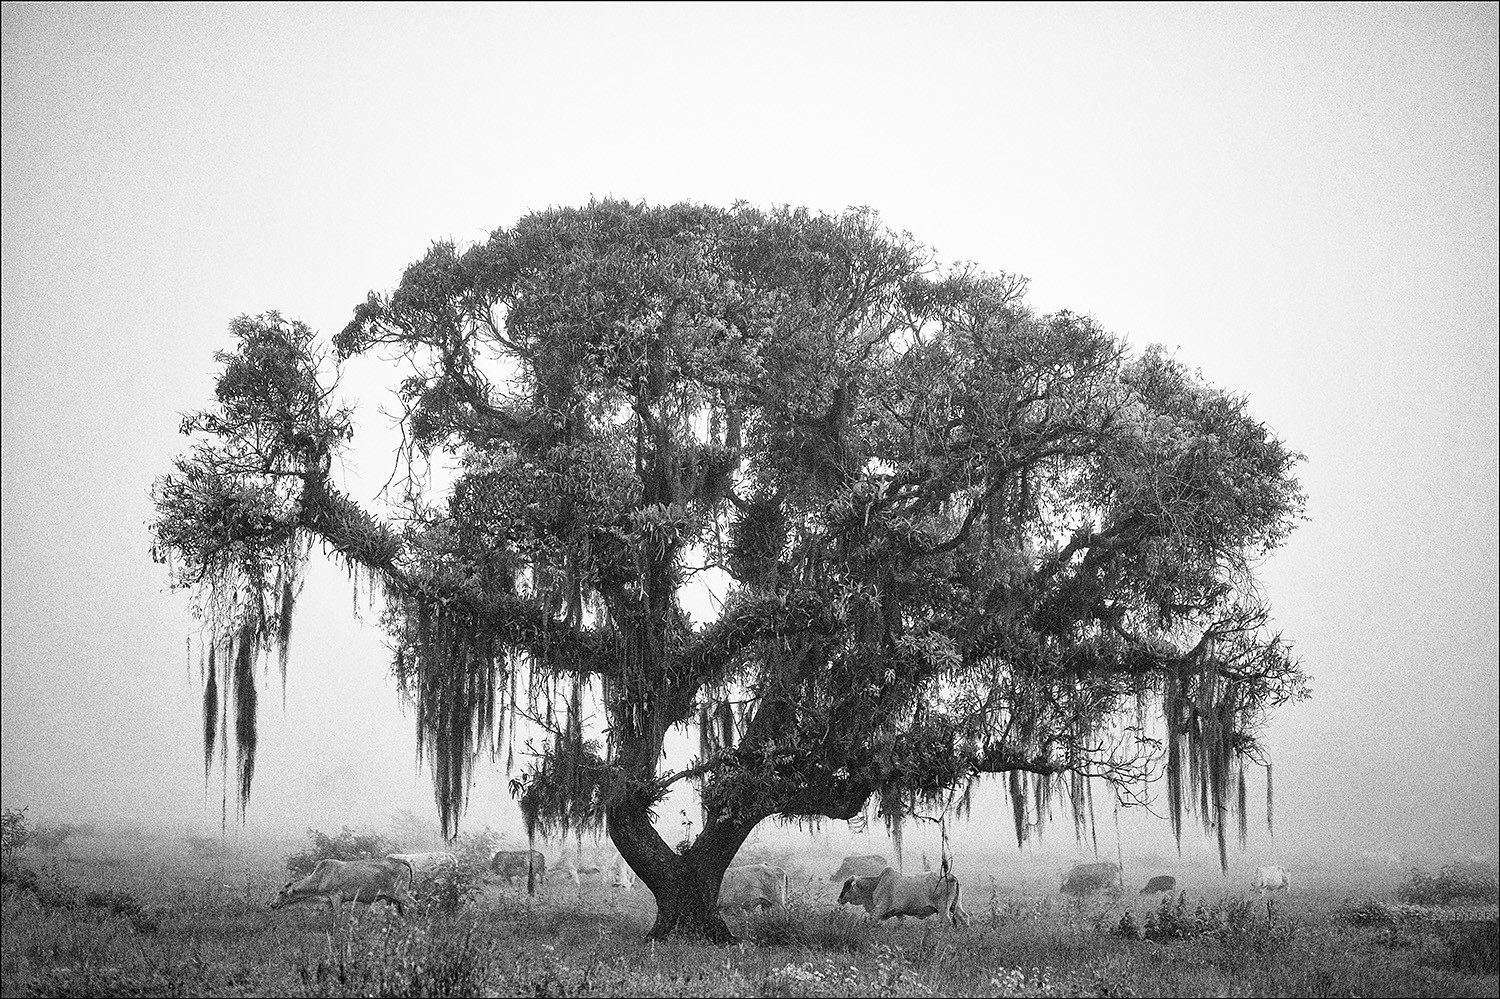 Tree, oxen and fog